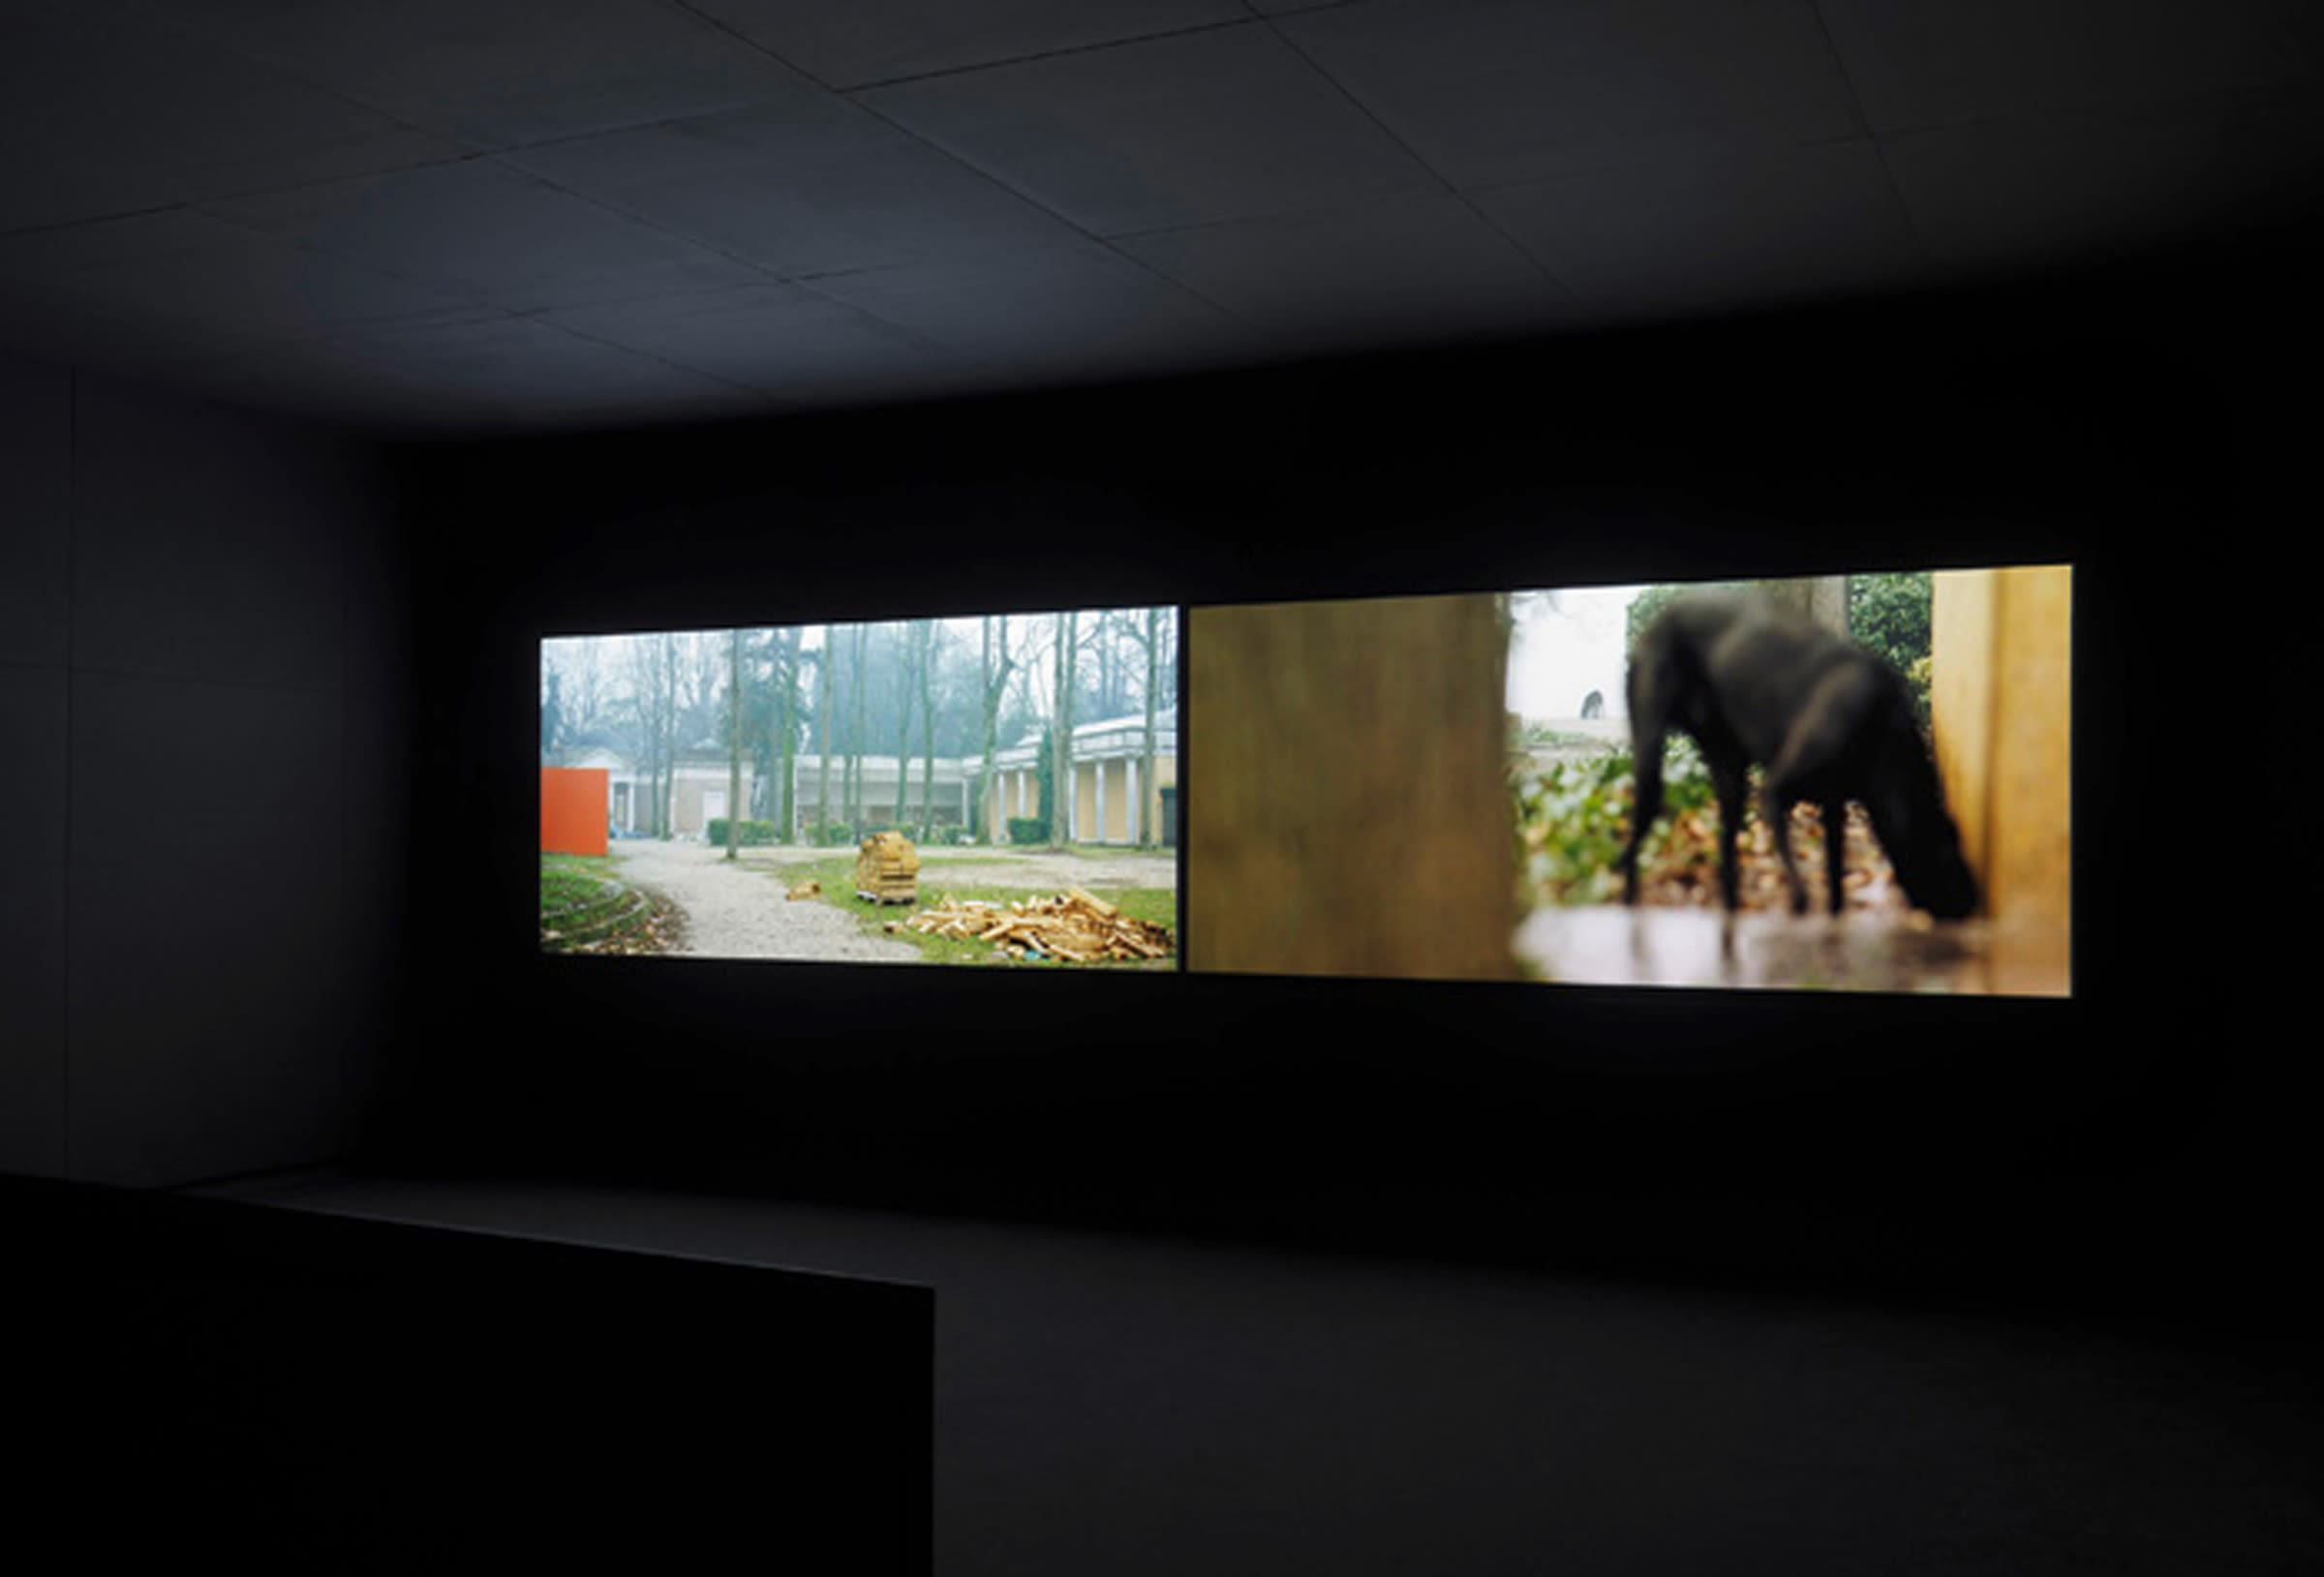 2 projections sit horizontally in a dark theater. On the left, a building with columns sits back among the trees. On the right, a black dog is in the foreground, face indistinct.